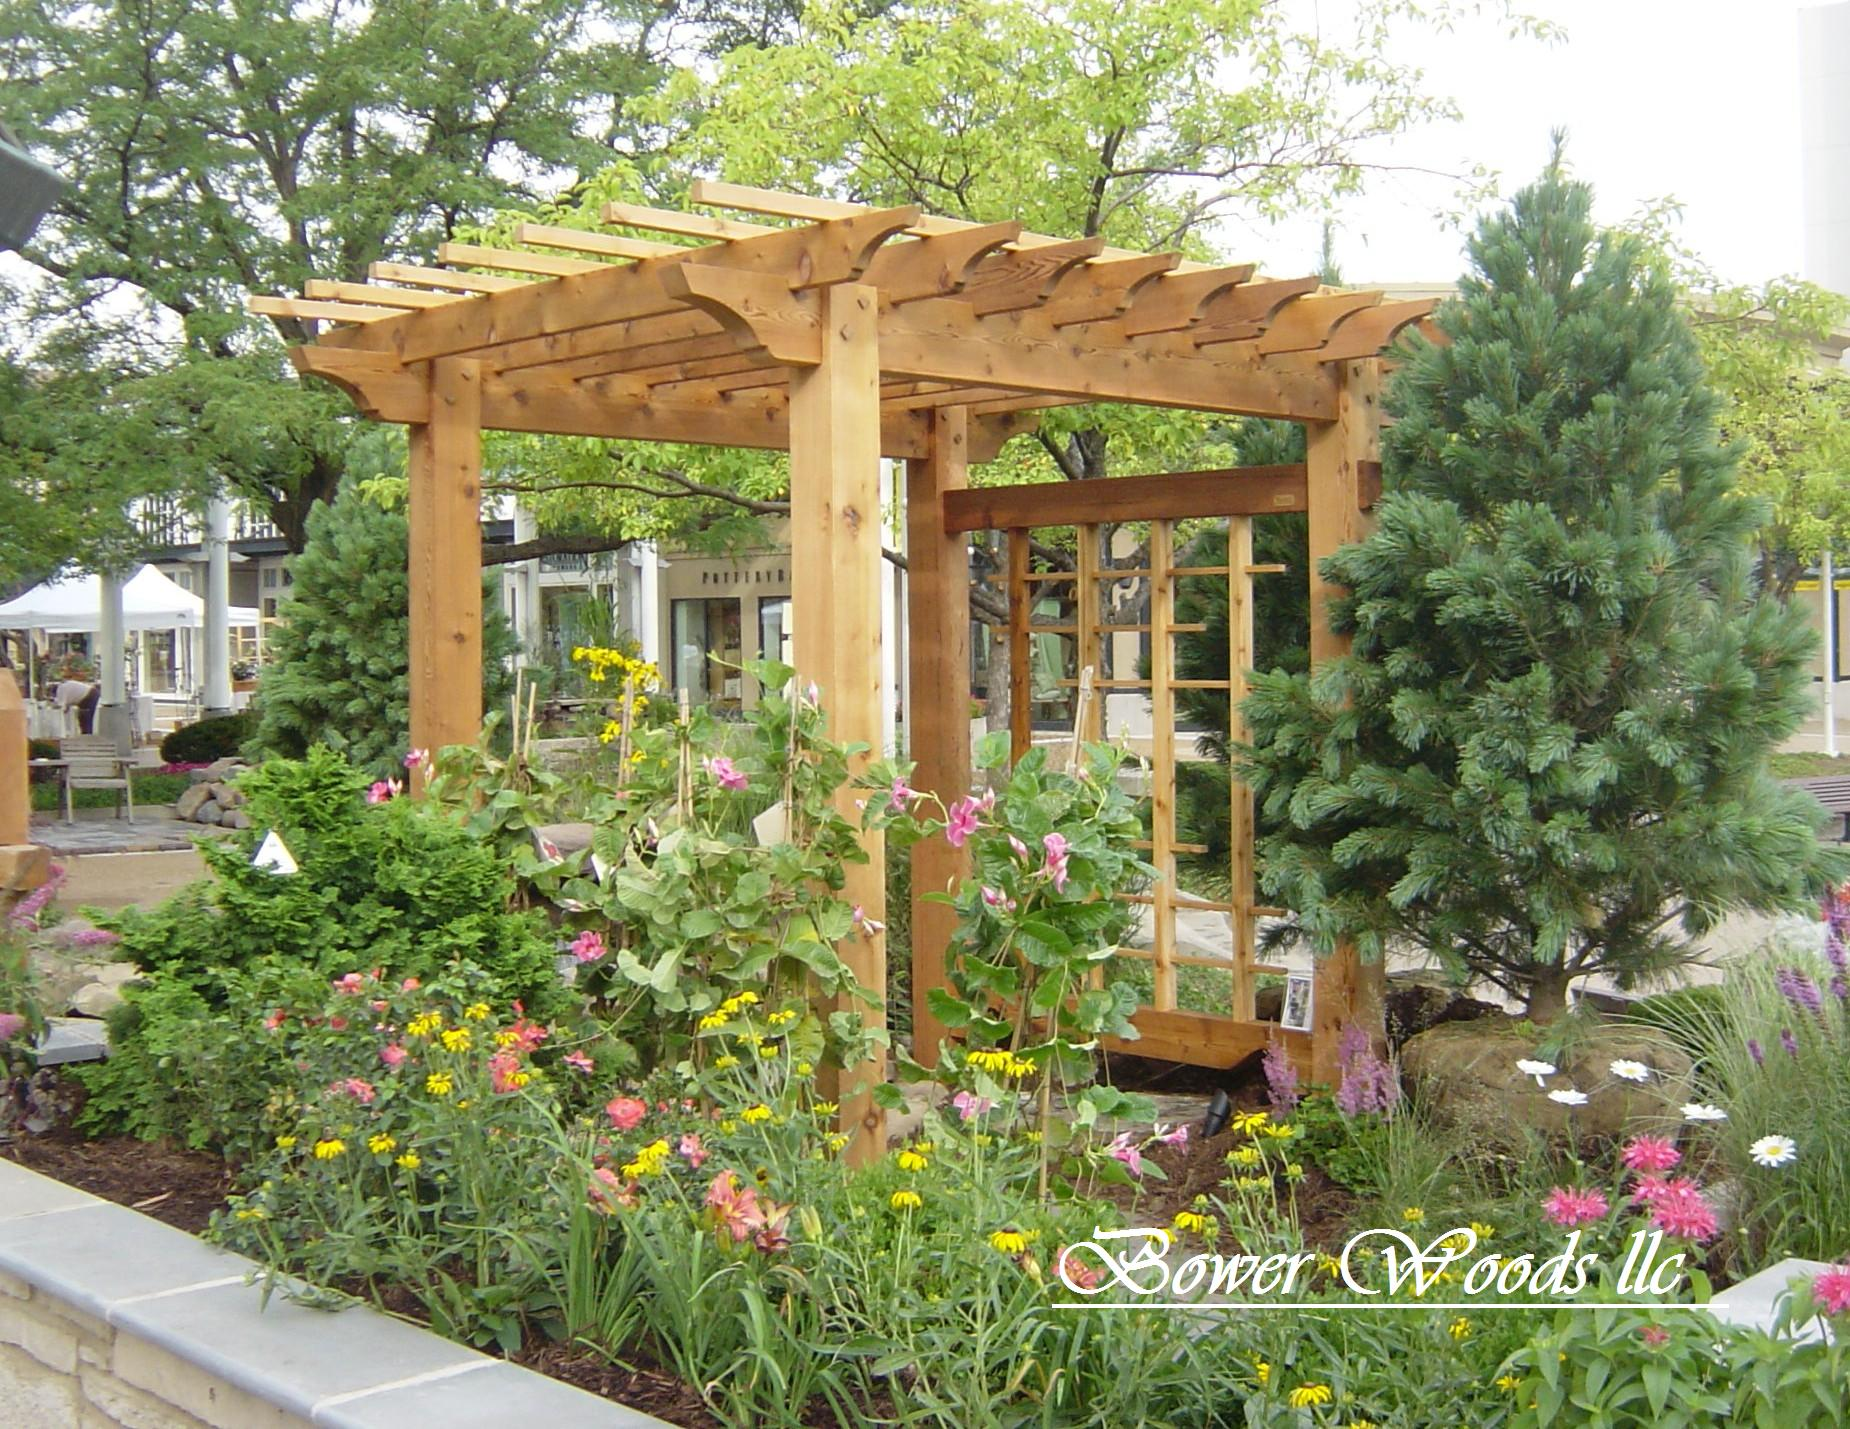 Arbor Designs Ideas minimalist wooden arbor design with pergola roof and swing bench with pair of cushions 1000 Images About Arbor Pergola On Pinterest Pergolas Arbors And Pergola Designs